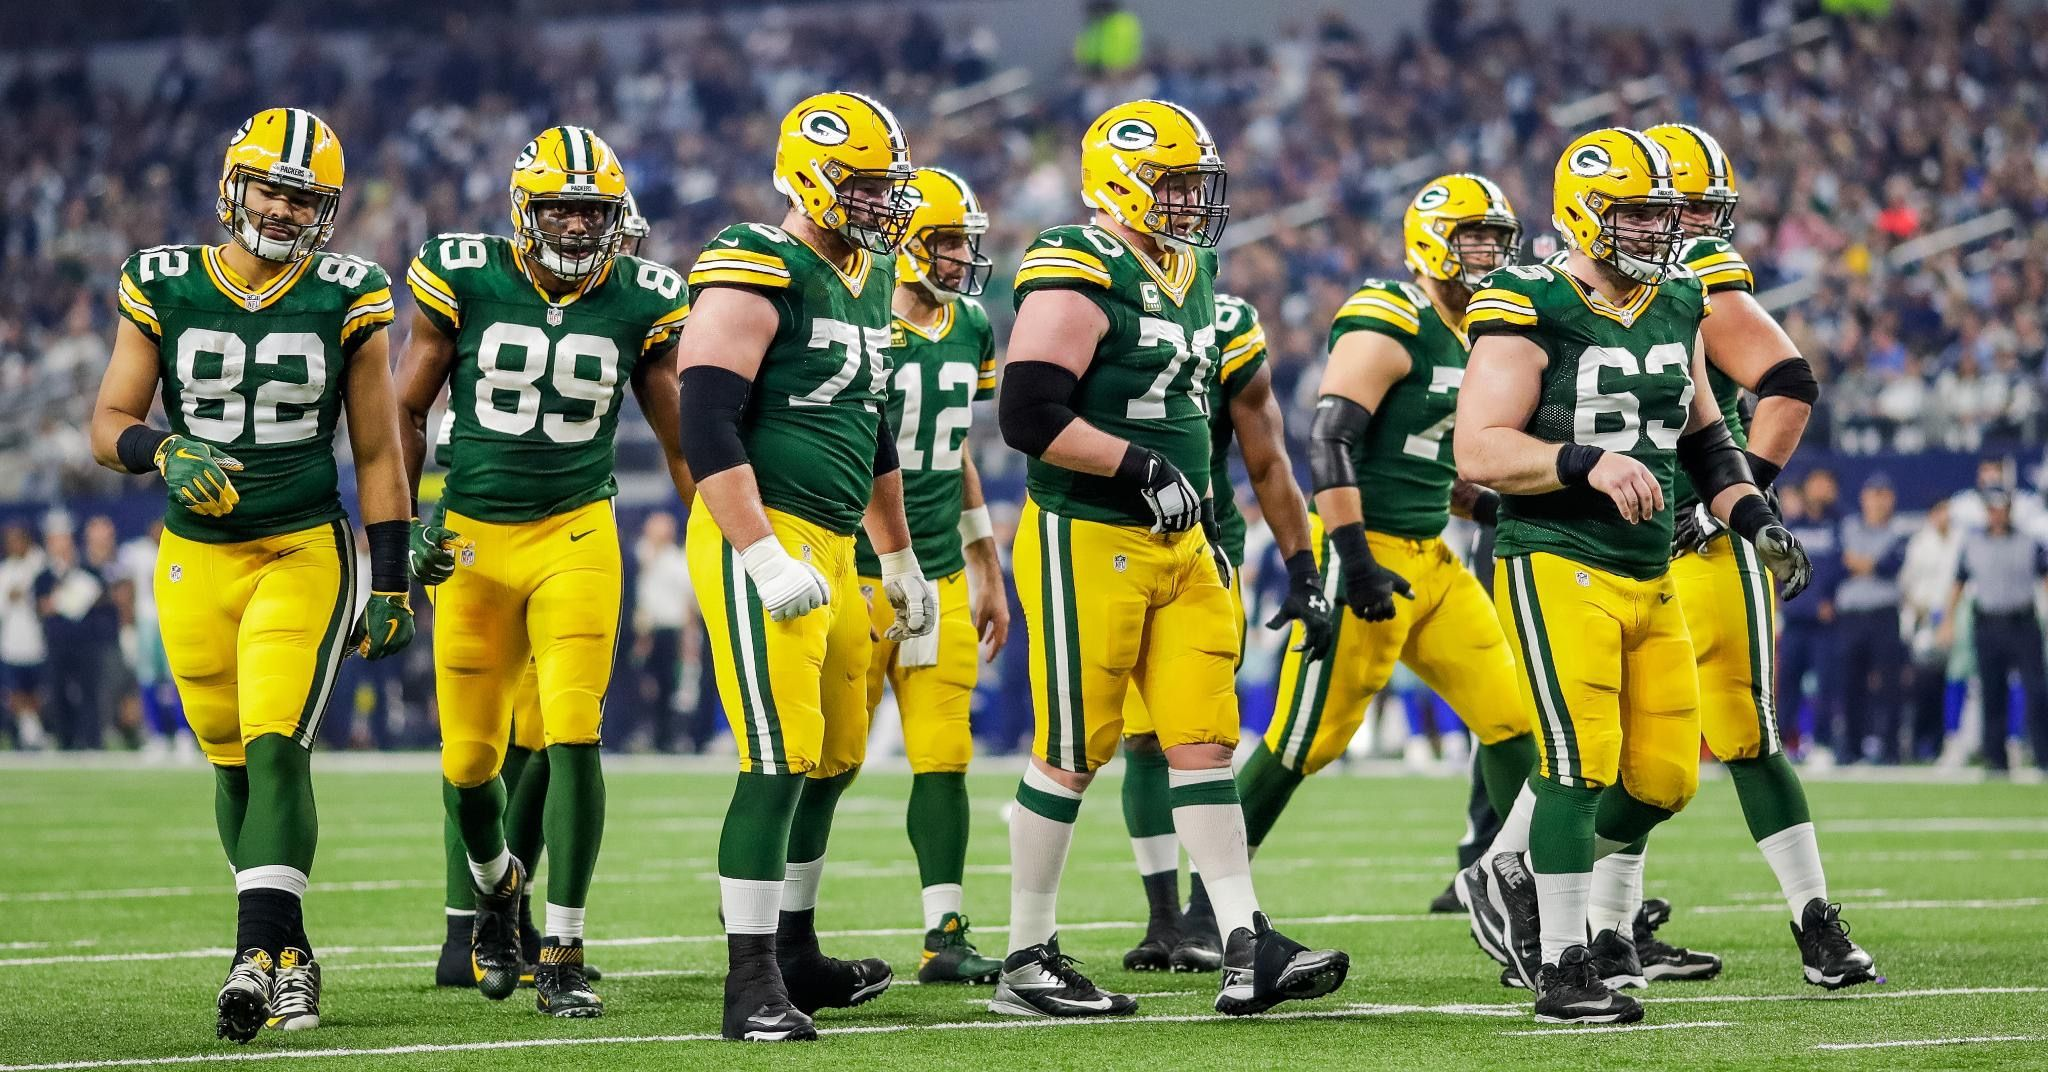 Pin By Zoe Sparks On Twitter Header Green Bay Green Bay Packers Packers